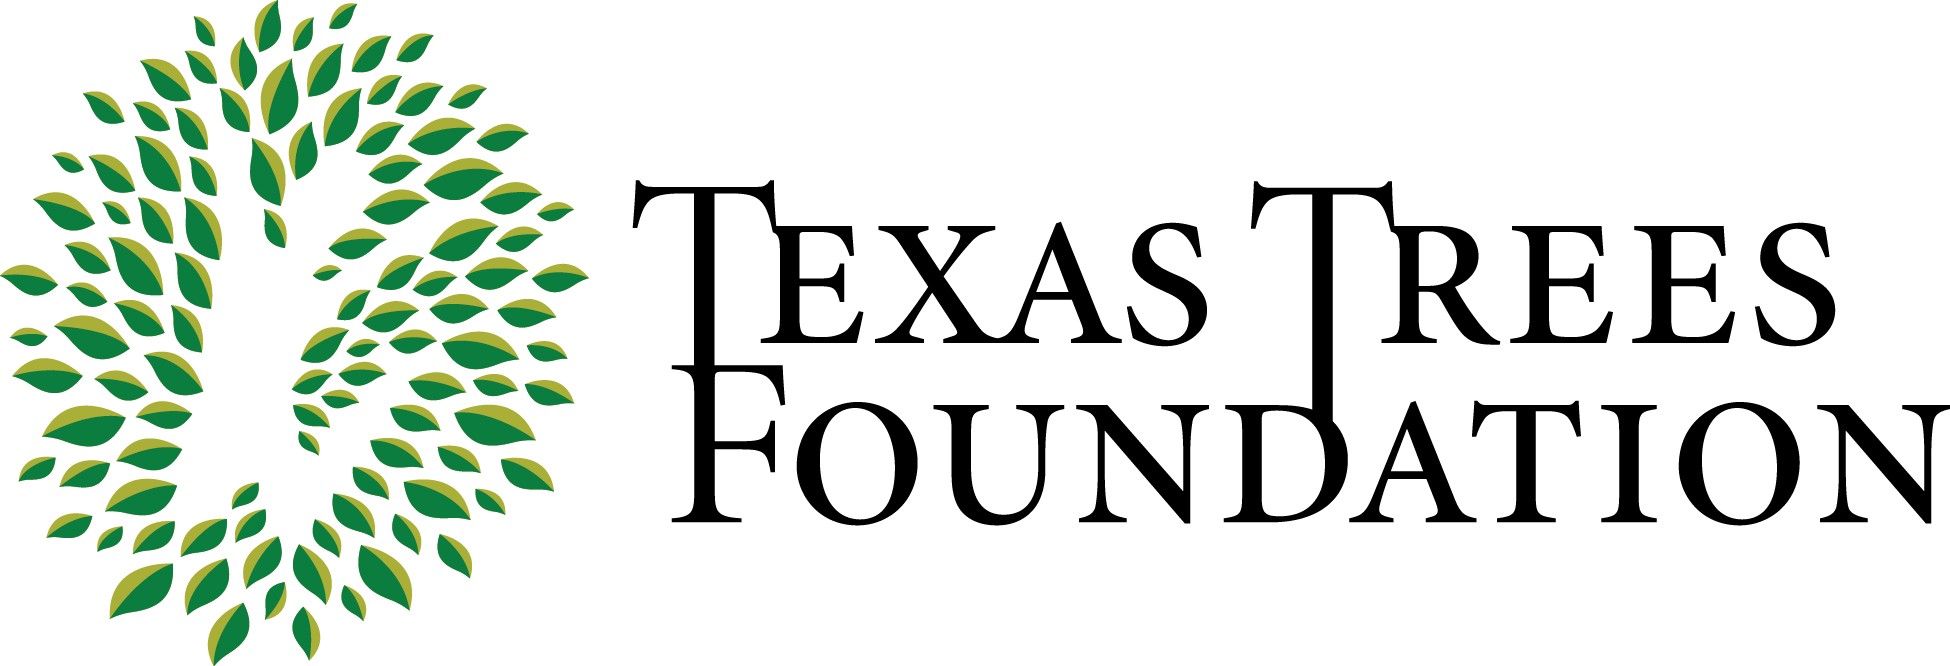 Texas Trees Foundation logo